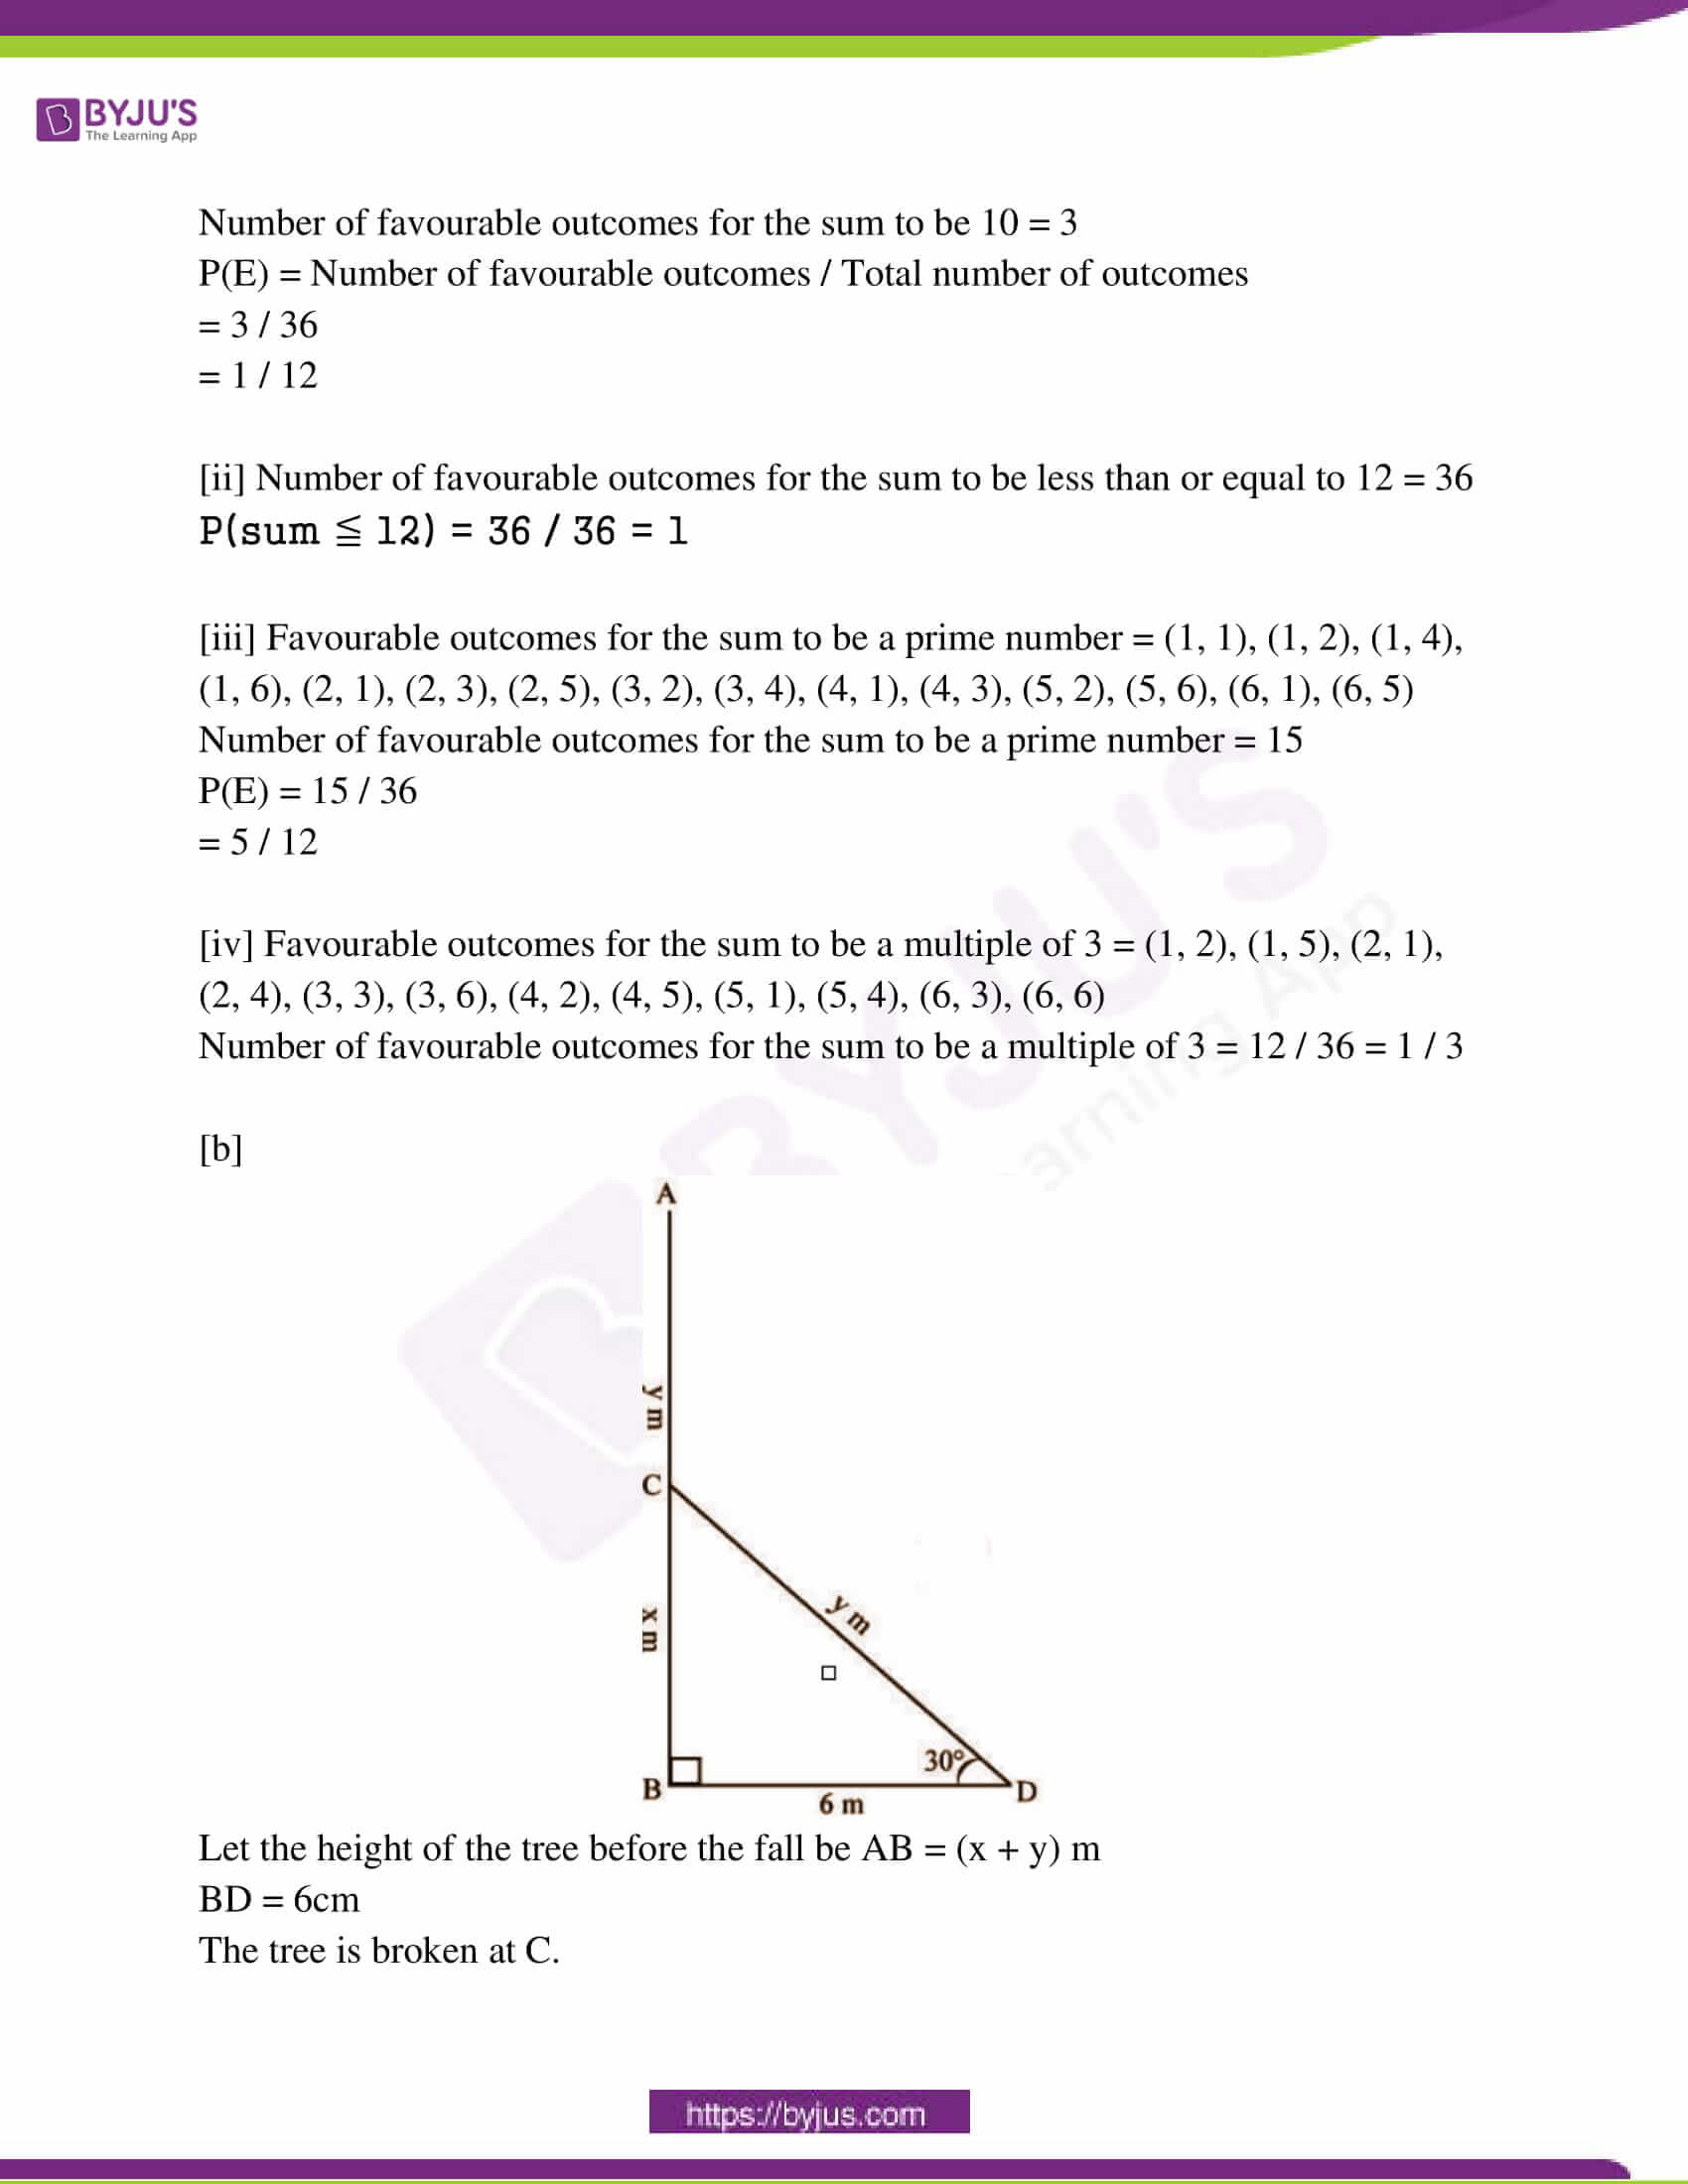 ap class 10 maths question paper 2 sol march 2019 08